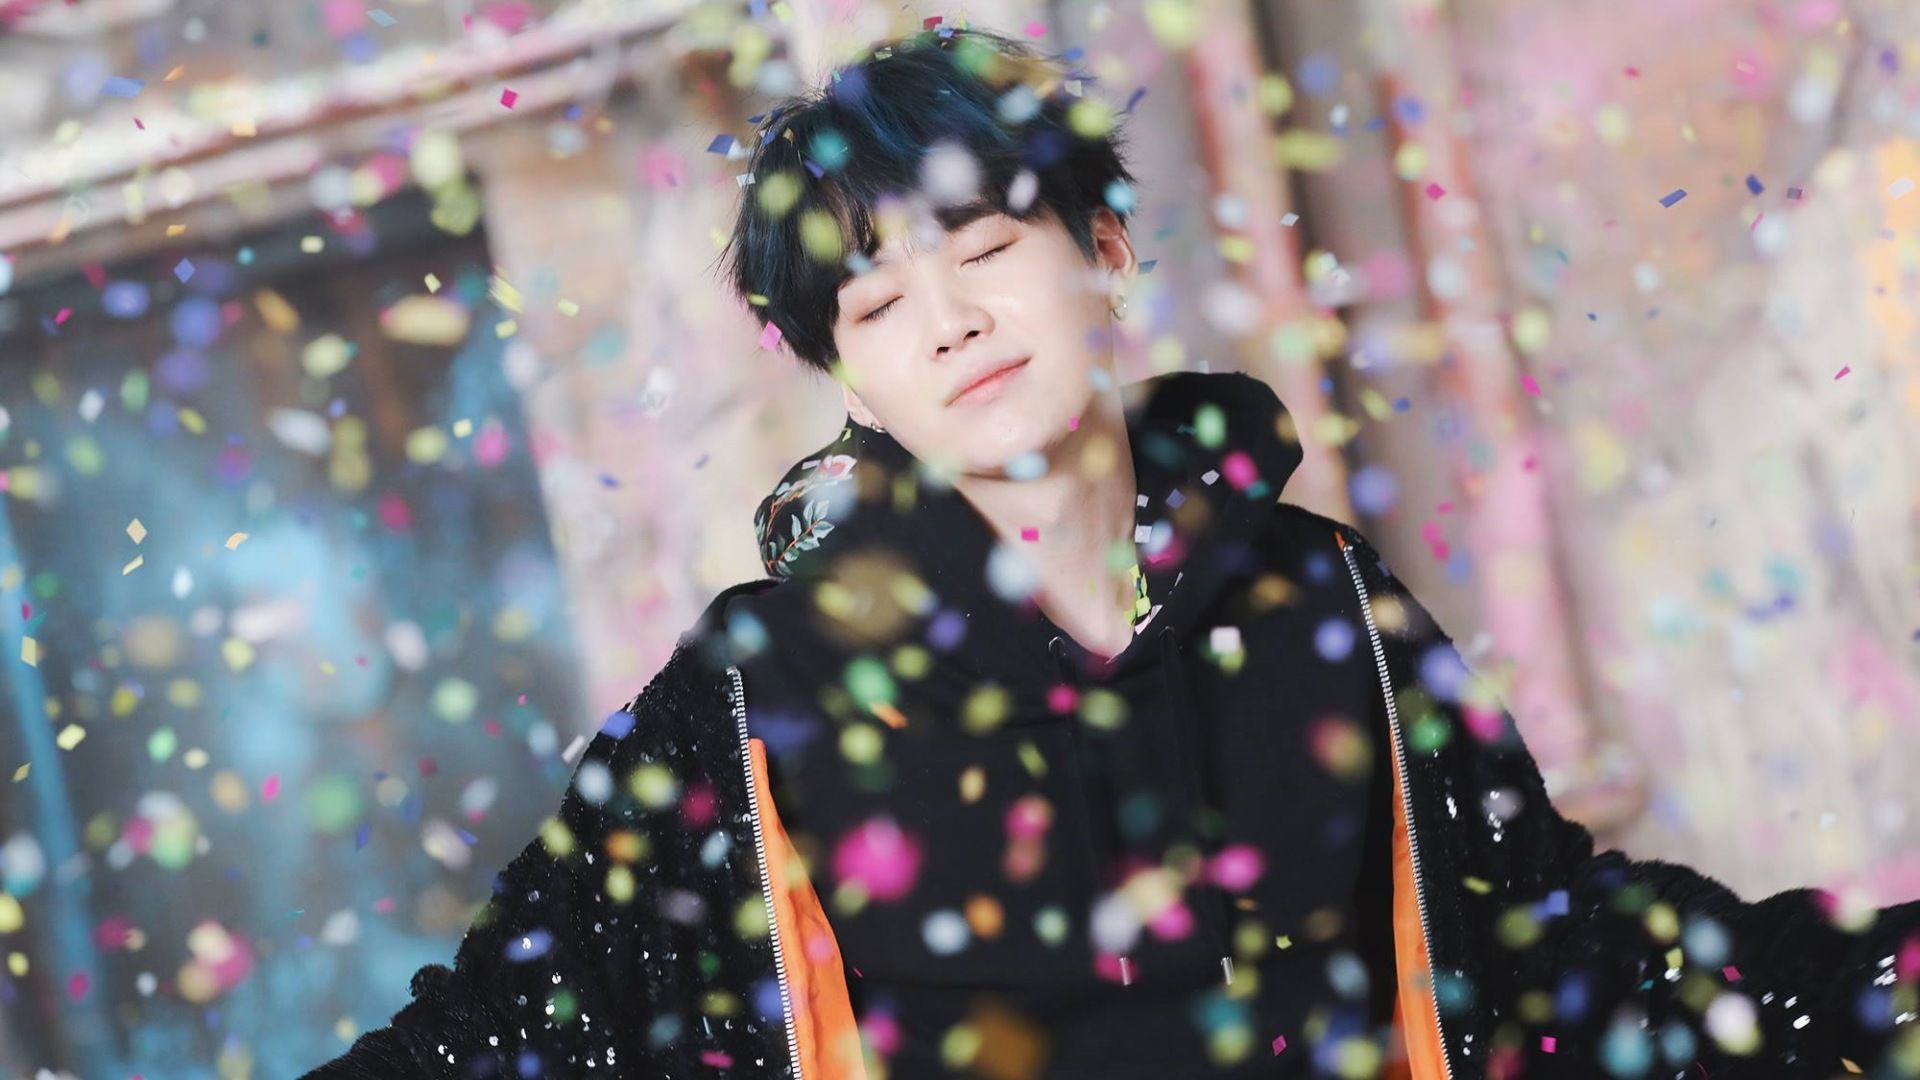 1920x1080 Suga Bts Wallpapers Wallpaper Cave In 2020 Bts You Never Walk Alone Bts Suga Bts Not Today